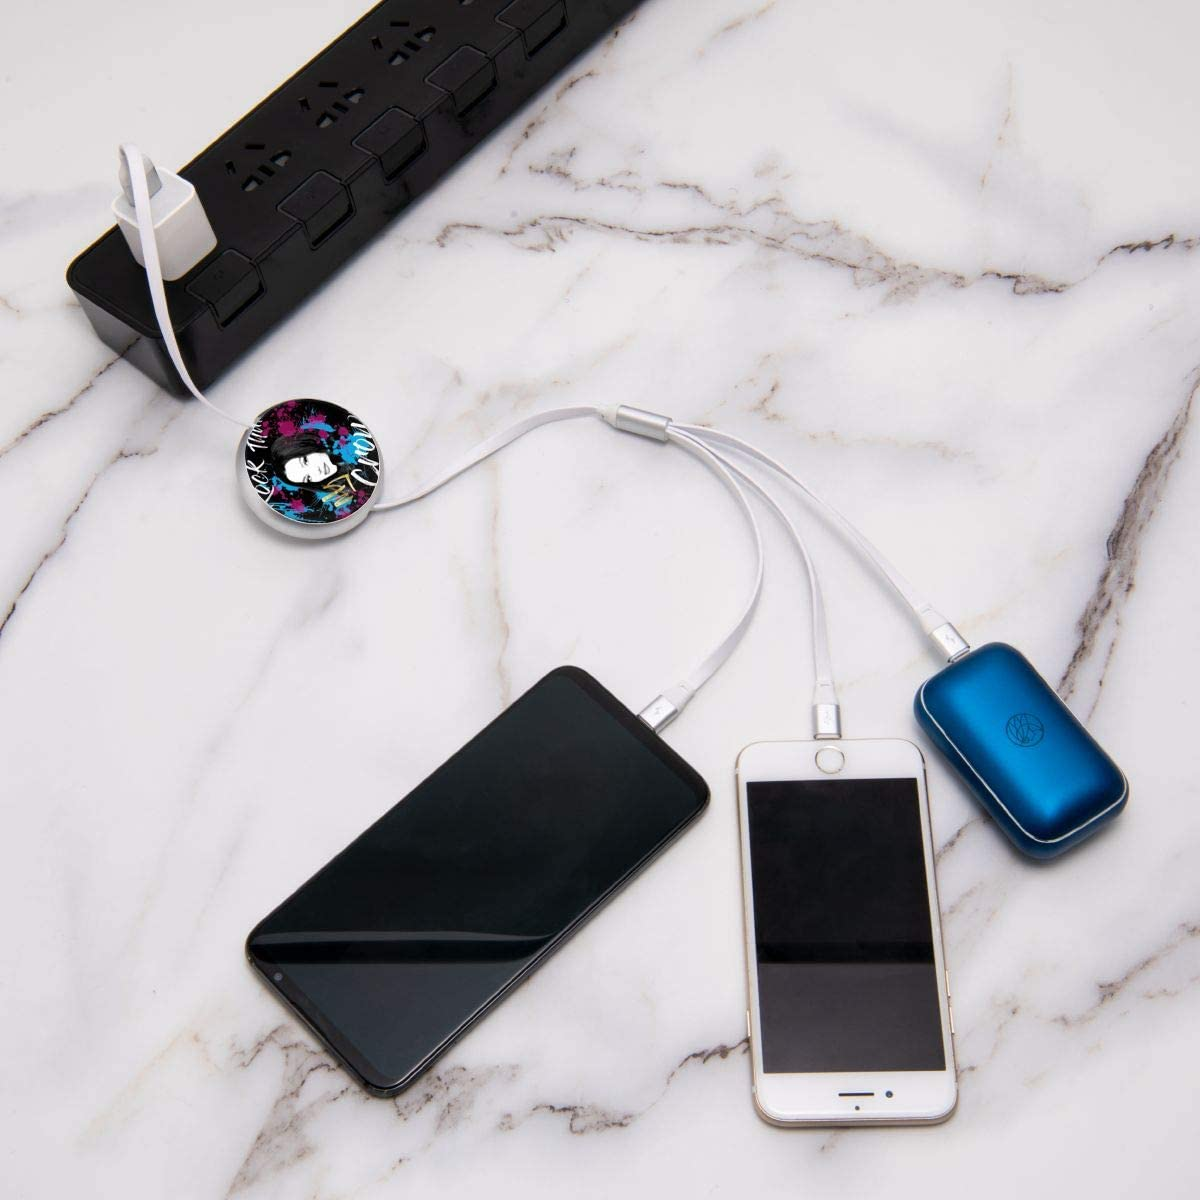 Descen-Dants 3suitable for Any Mobile Phone Three in One Data Line